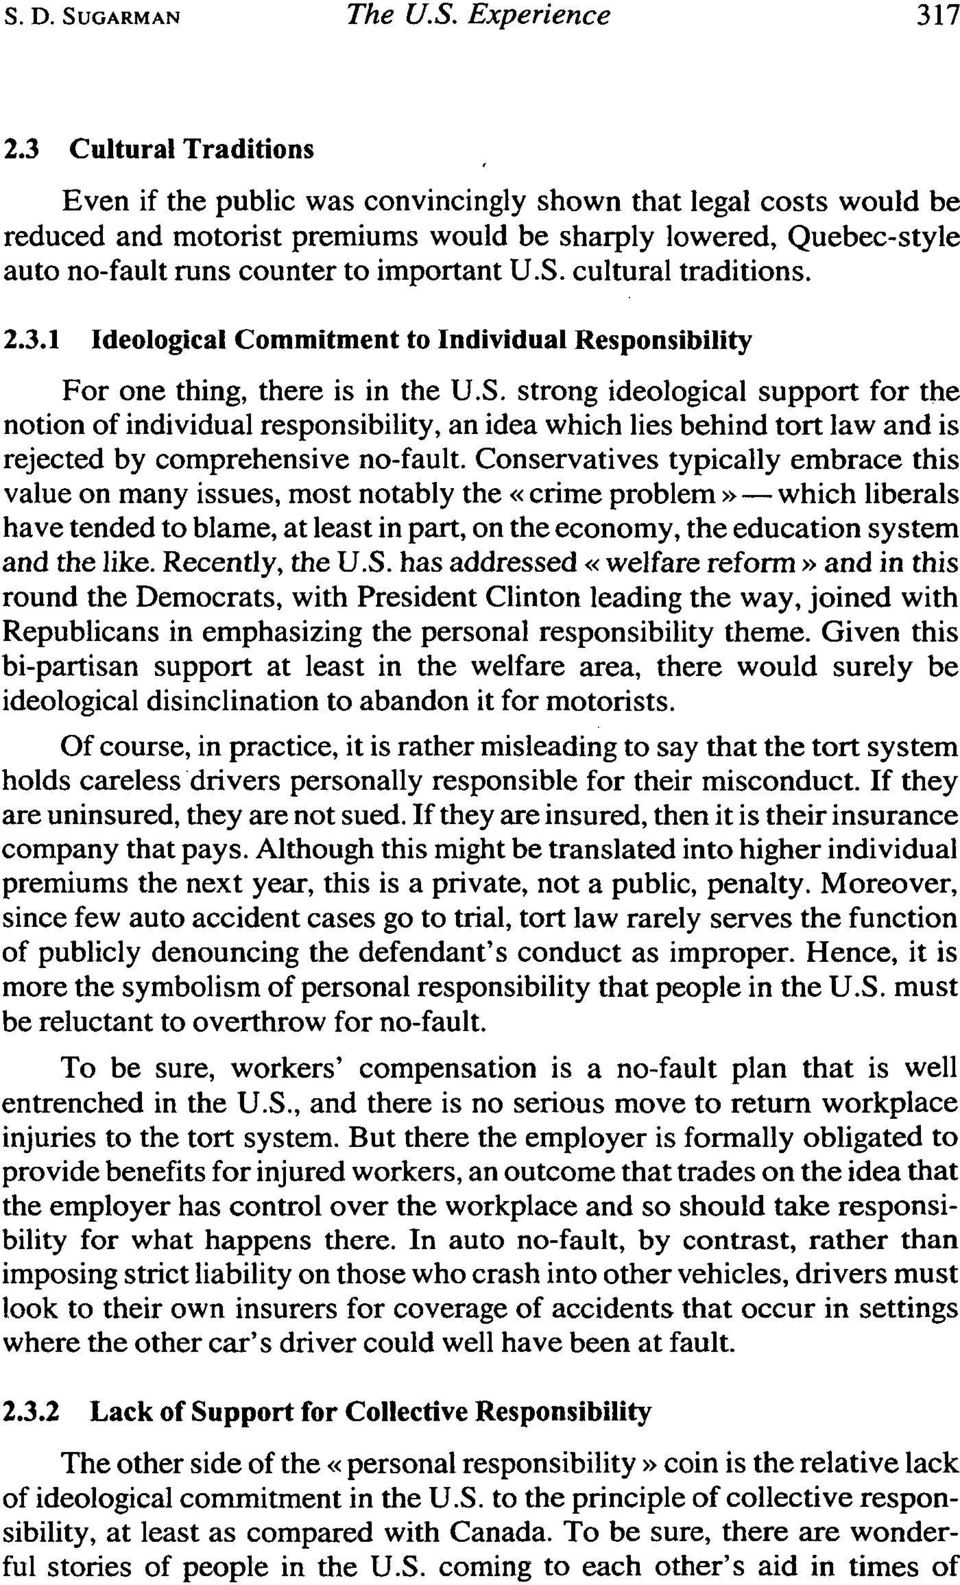 U.S. cultural traditions. 2.3.1 Ideological Commitment to Individual Responsibility For one thing, there is in the U.S. strong ideological support for the notion of individual responsibility, an idea which lies behind tort law and is rejected by comprehensive no-fault.